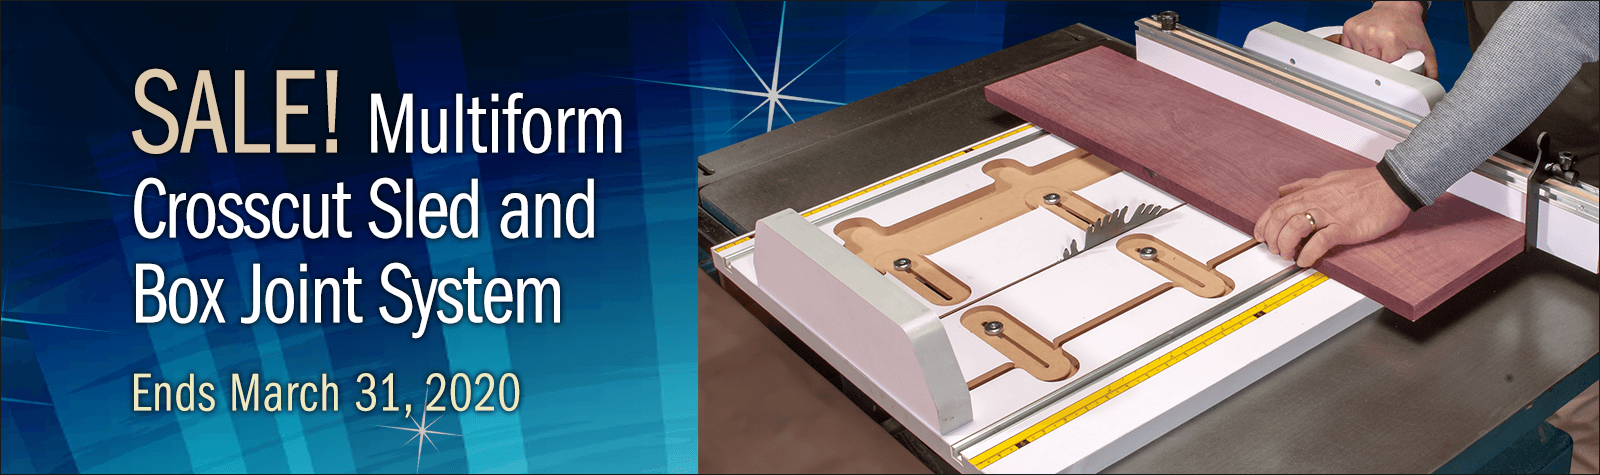 New COMBO! Multiform Crosscut Sled & Box Joint System